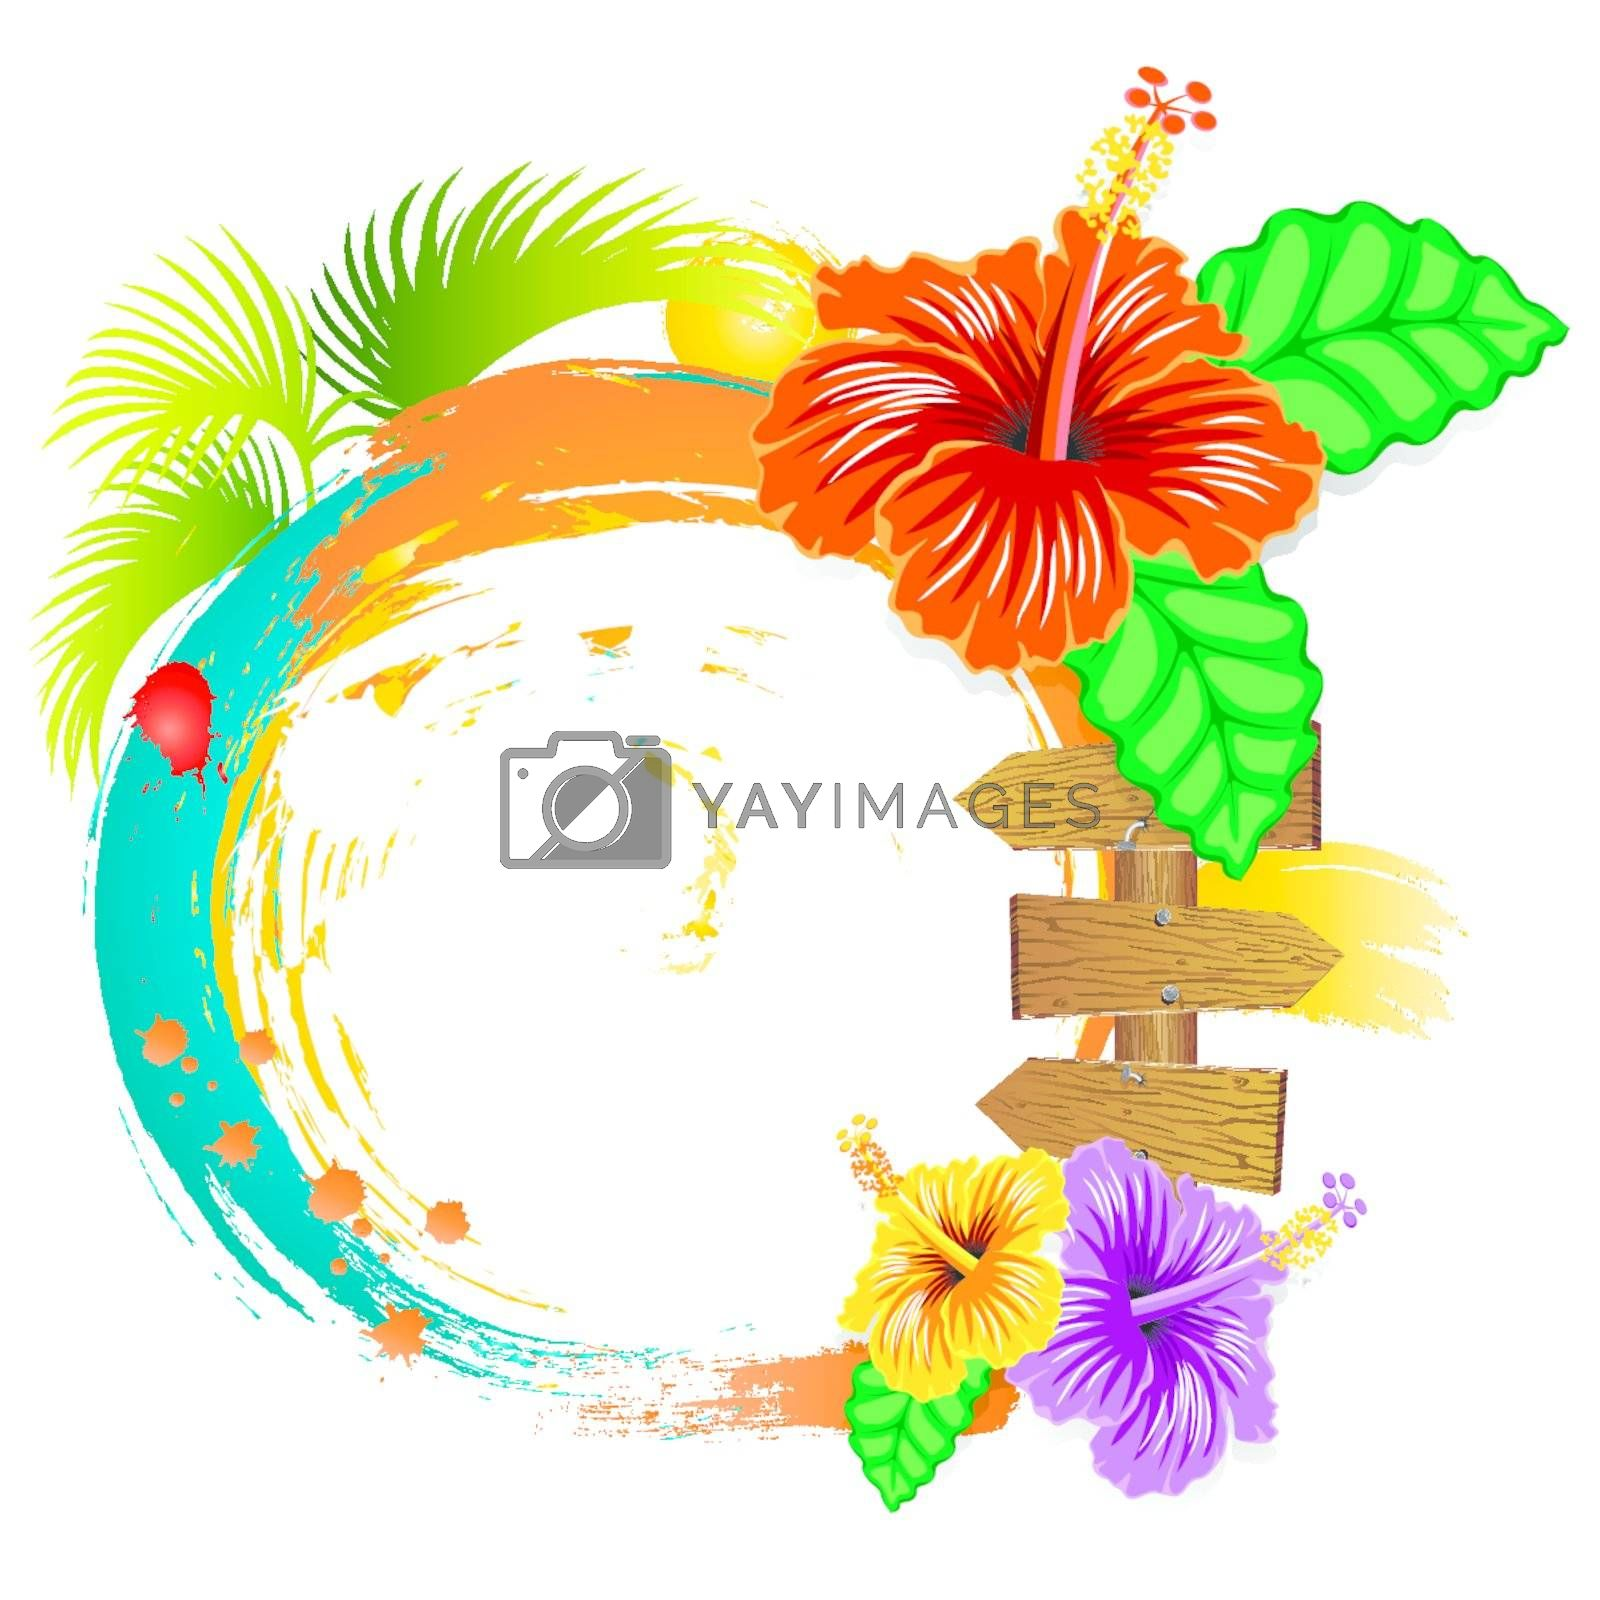 Hibiscus flowers and summer frame on white background.